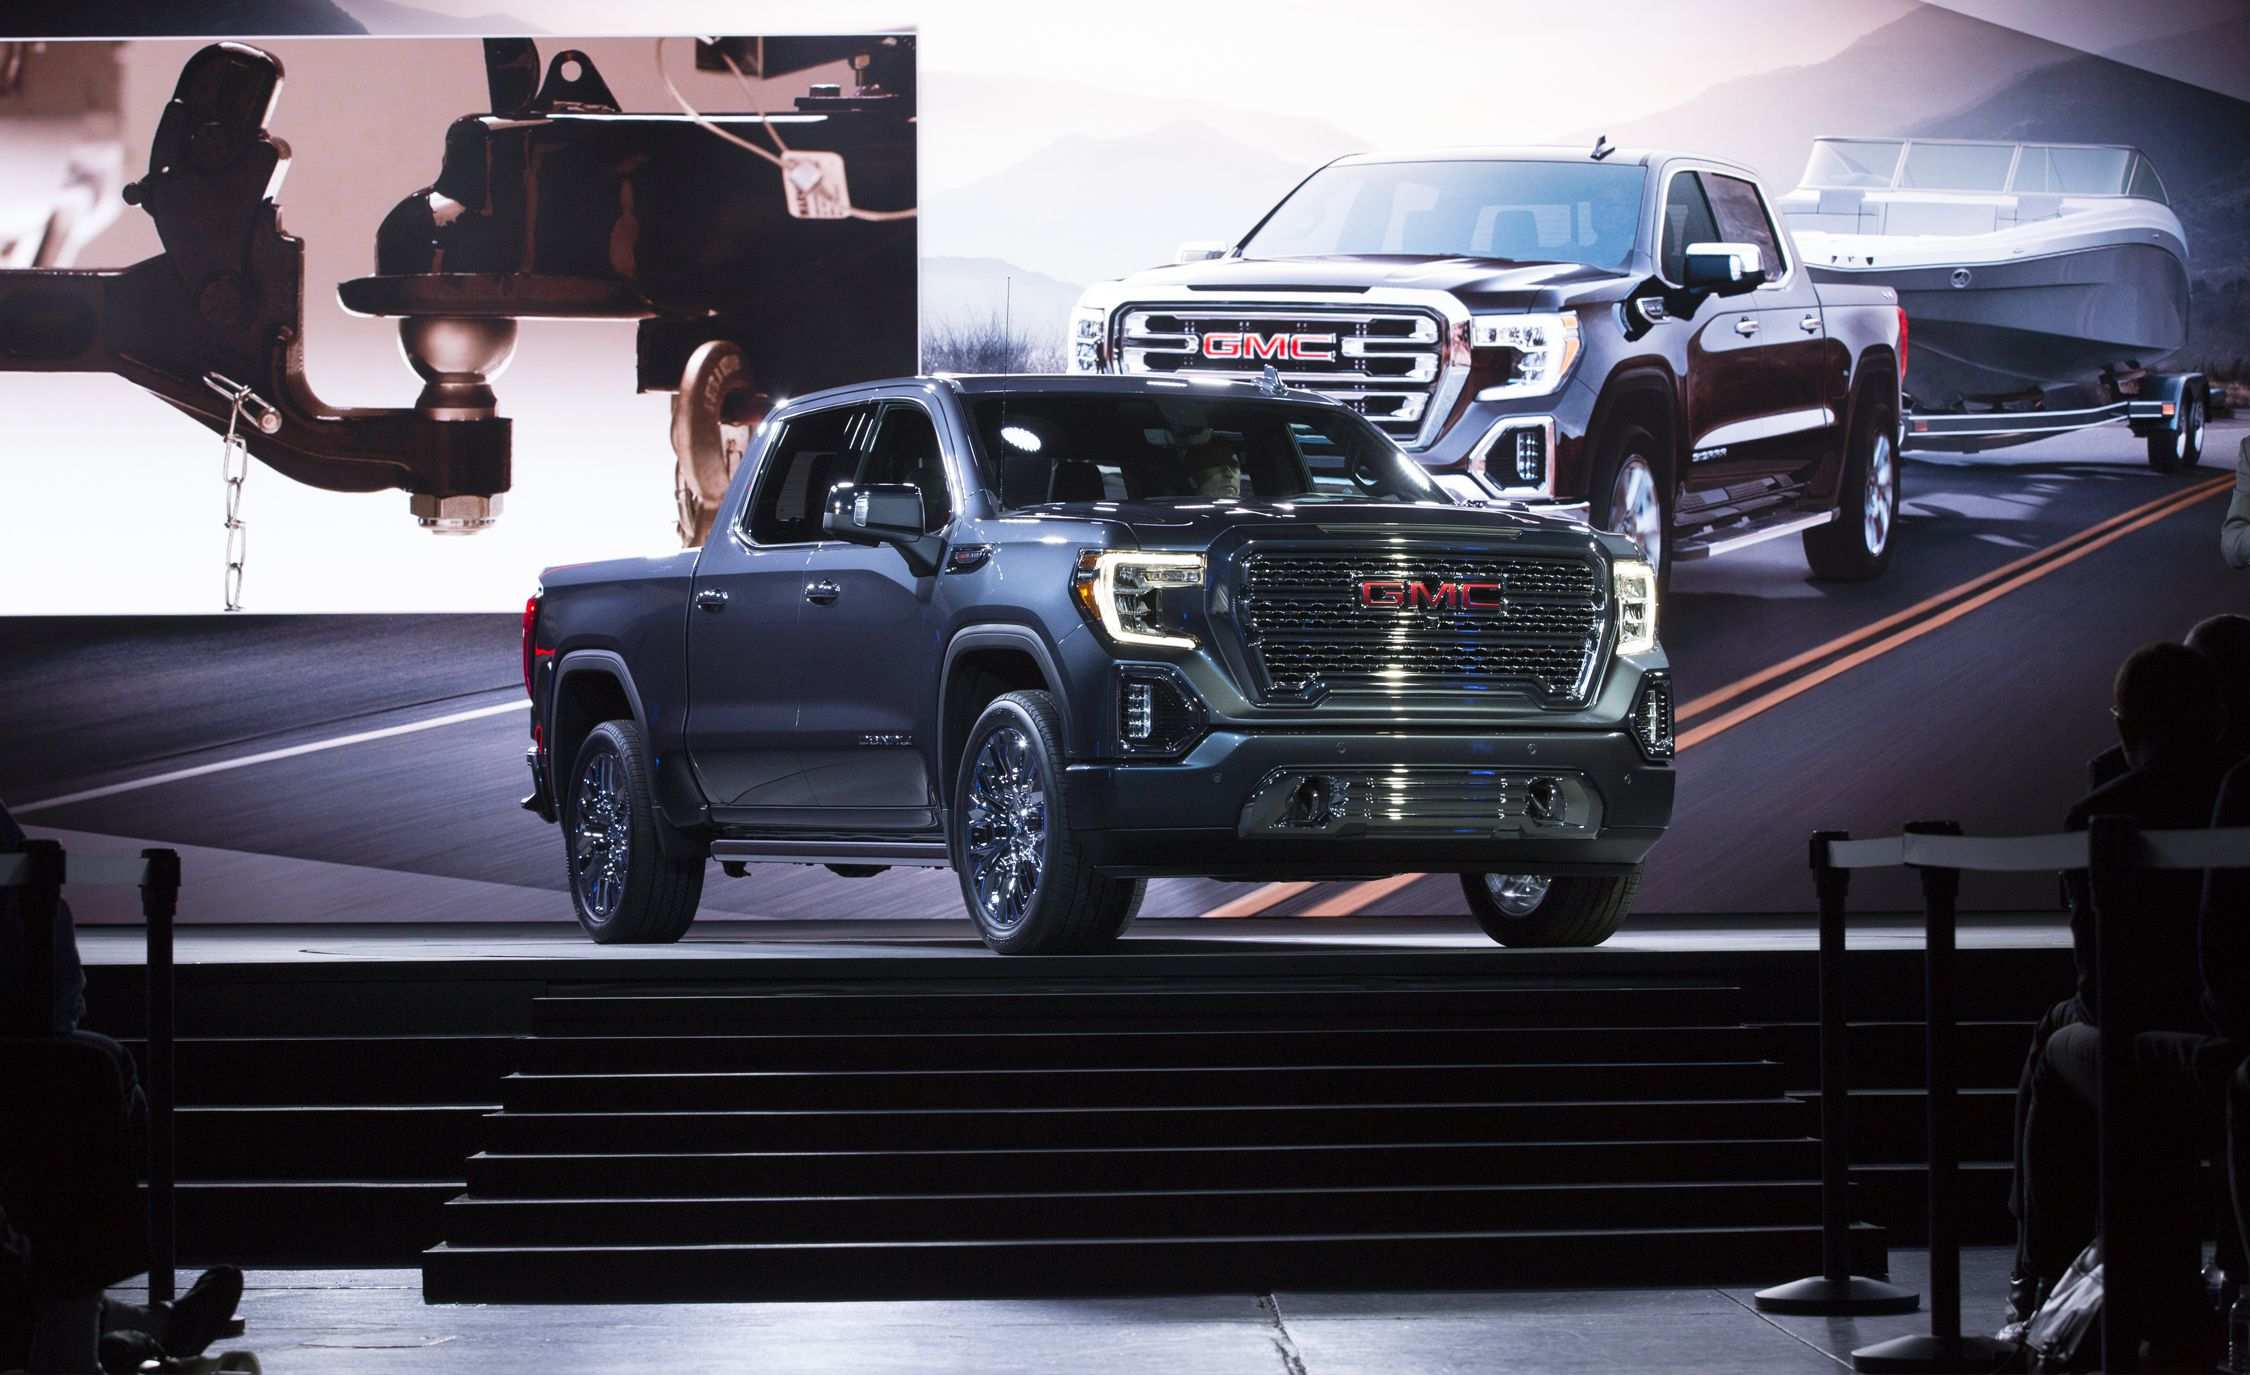 27 All New 2019 Gmc News History for 2019 Gmc News